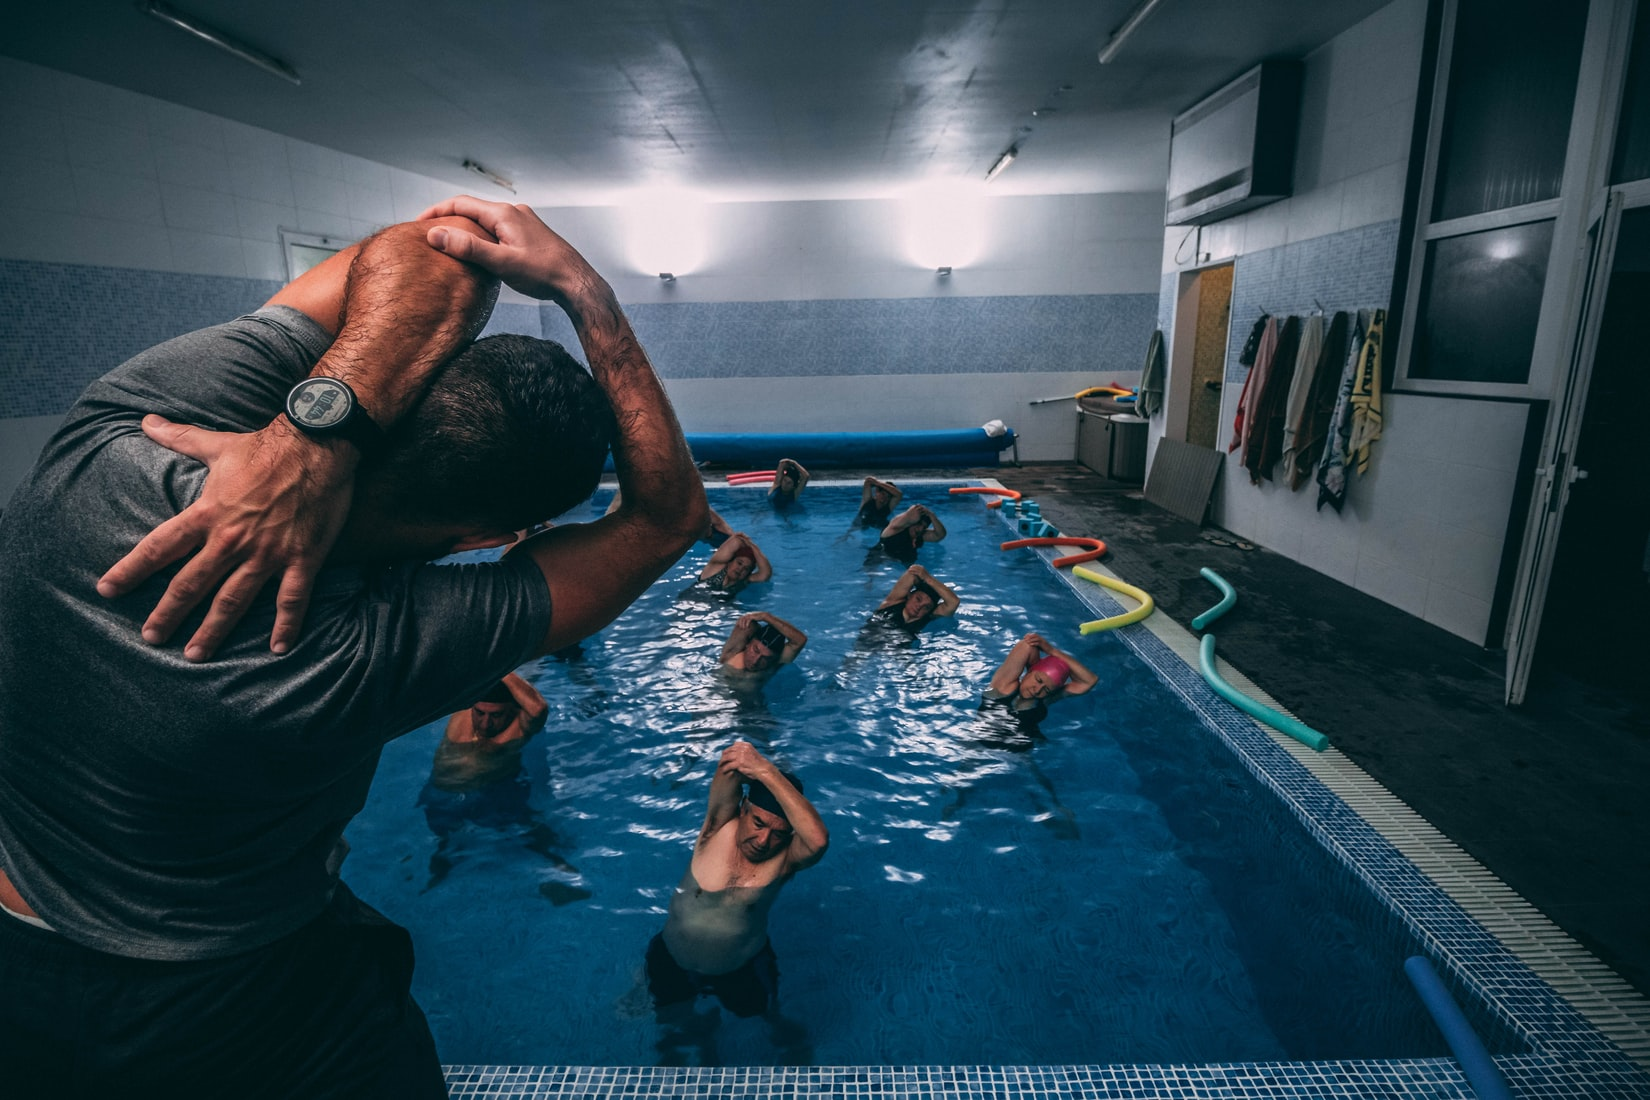 kinesiologist leading stretches for people in pool